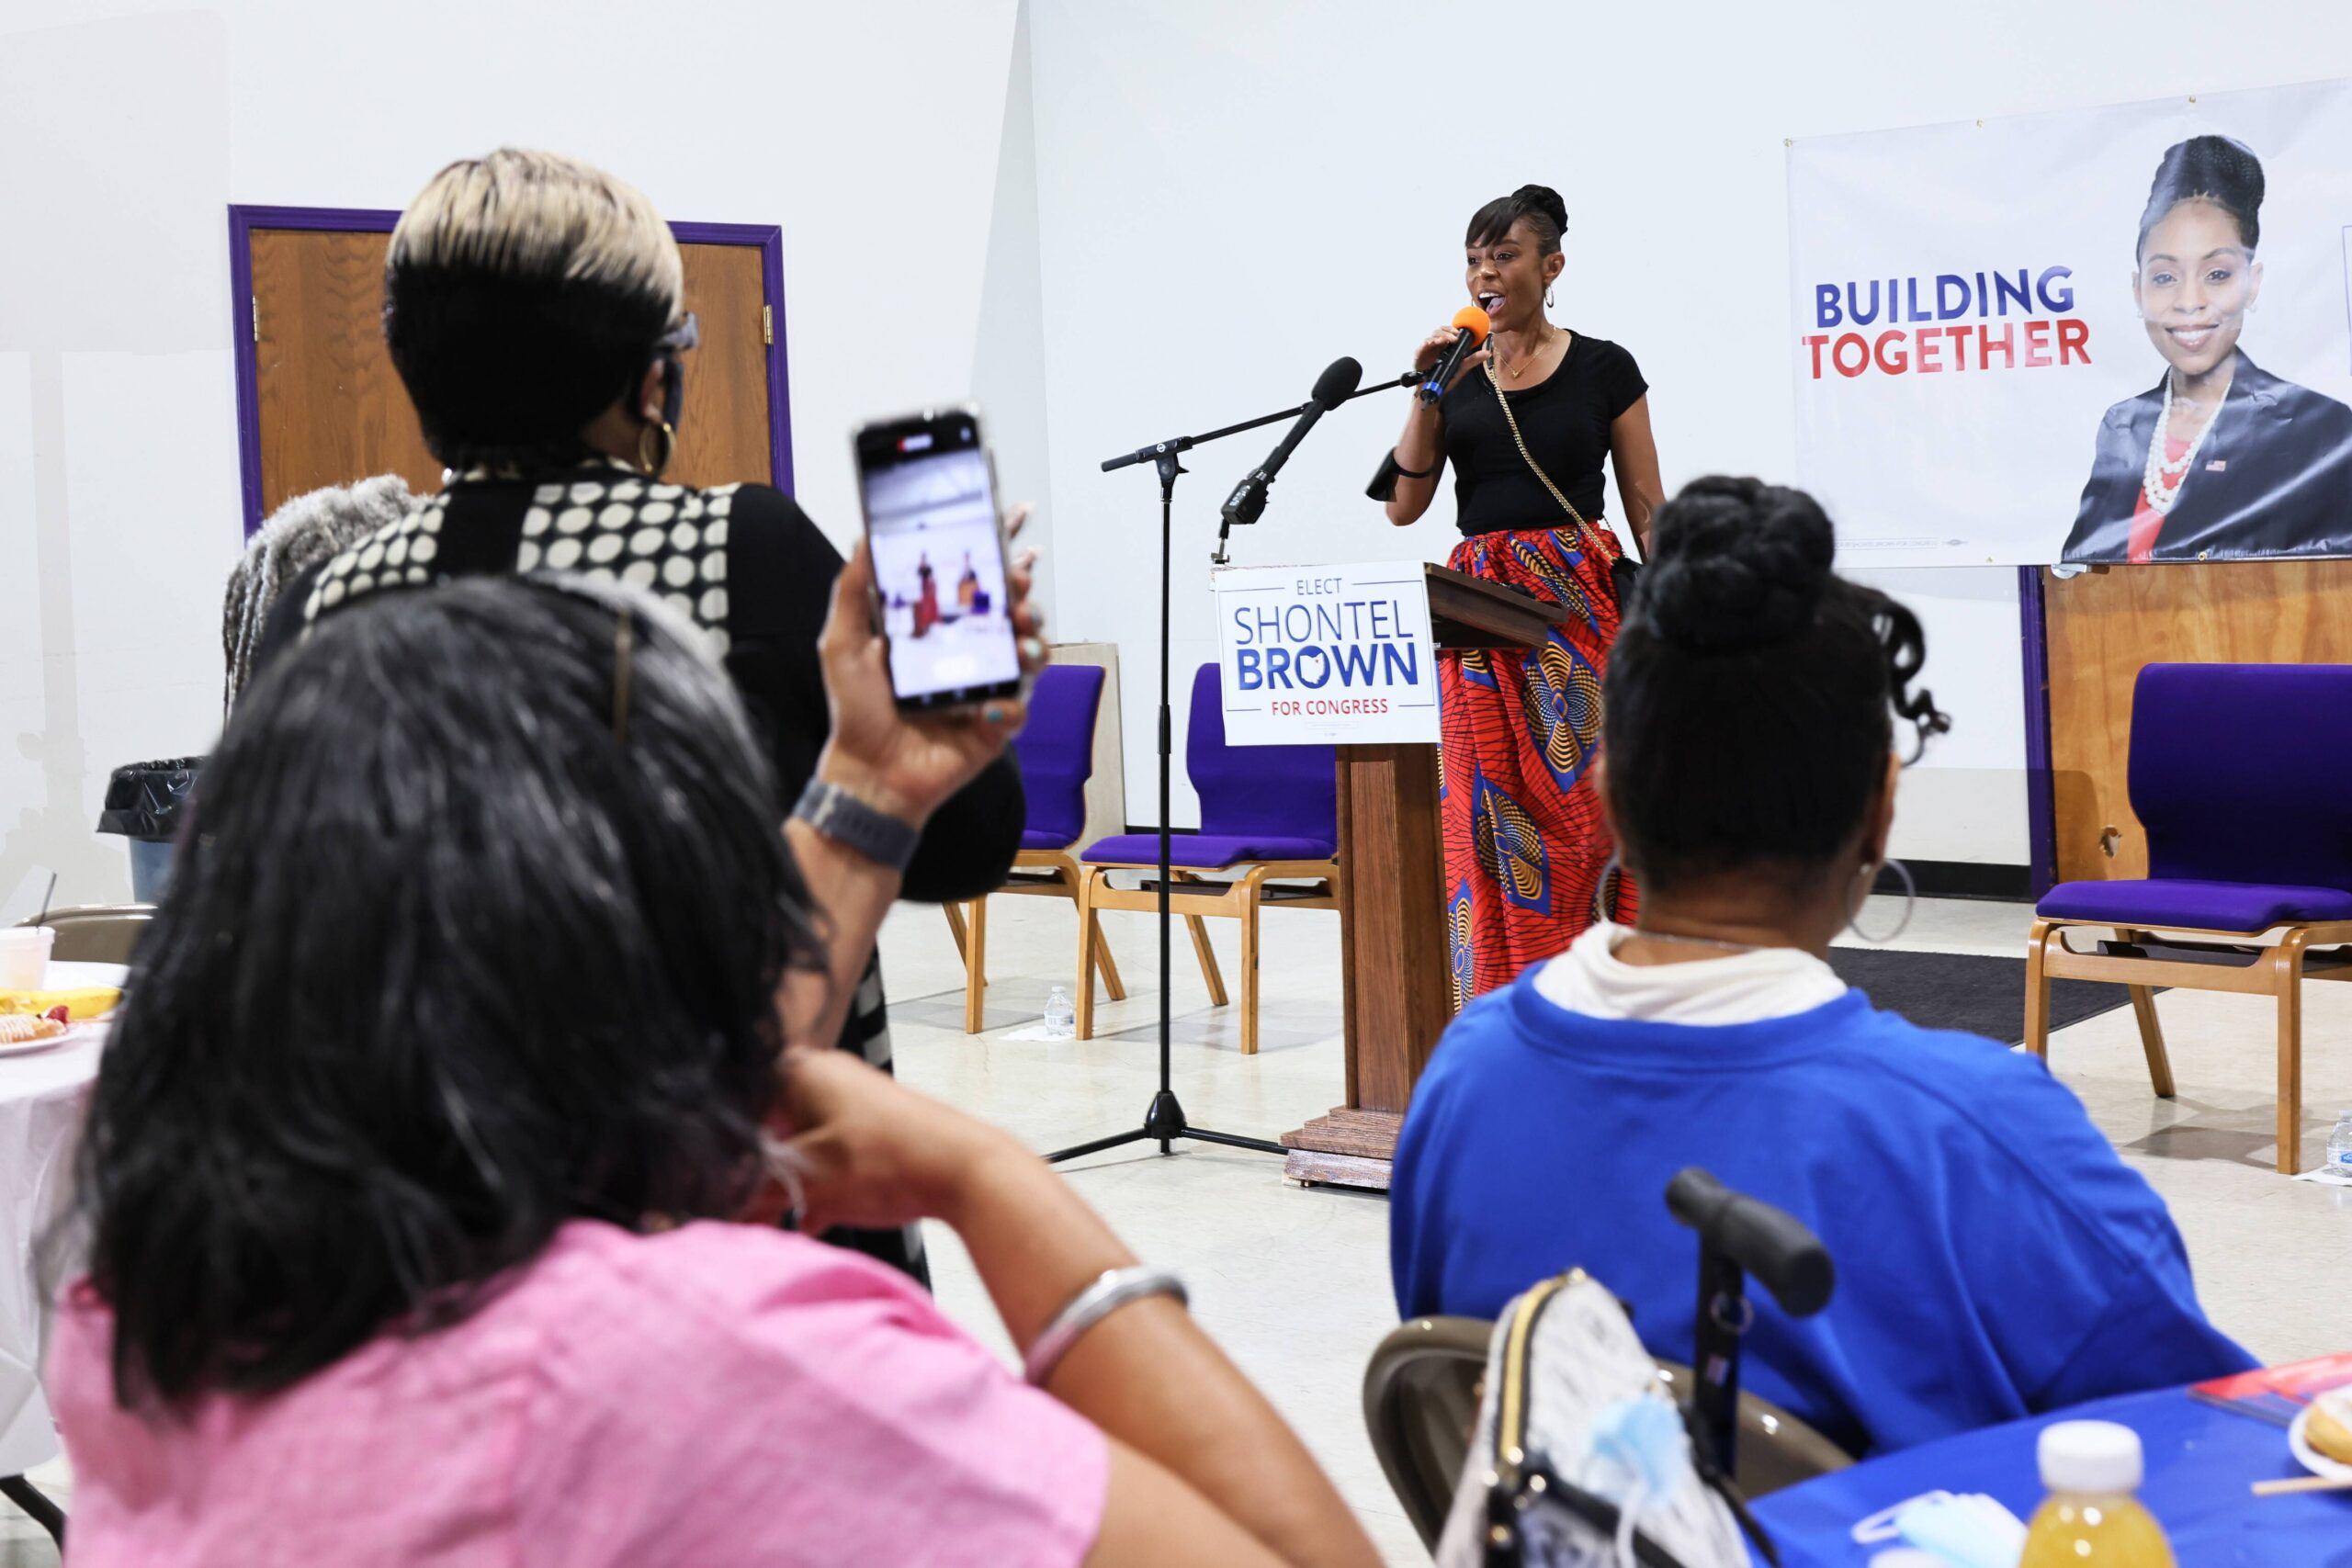 <i>Michael M. Santiago/Getty Images</i><br/>Cuyahoga County Council Representative and Ohio 11th District congressional candidate Shontel Brown speaks during Get Out the Vote campaign event at Mt. Zion Fellowship on July 31